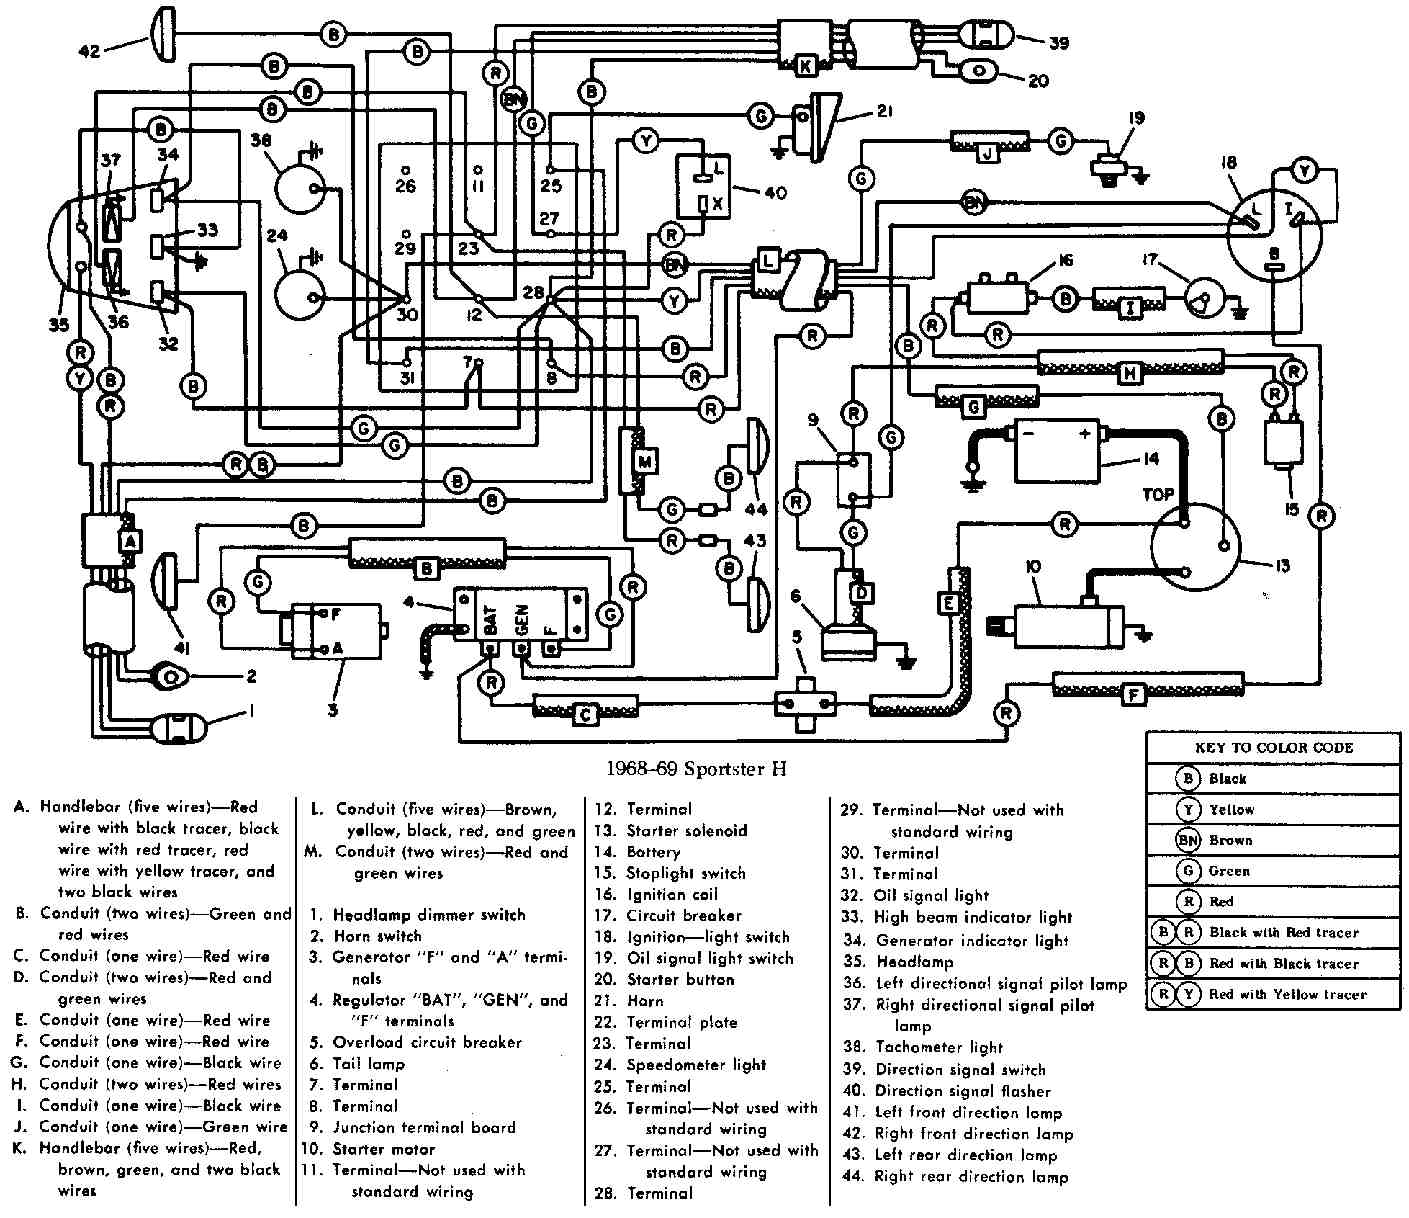 1998 Harley Dyna Wiring Diagram Libraries Glo Pro Diagrams1998 Davidson Library Fatboy